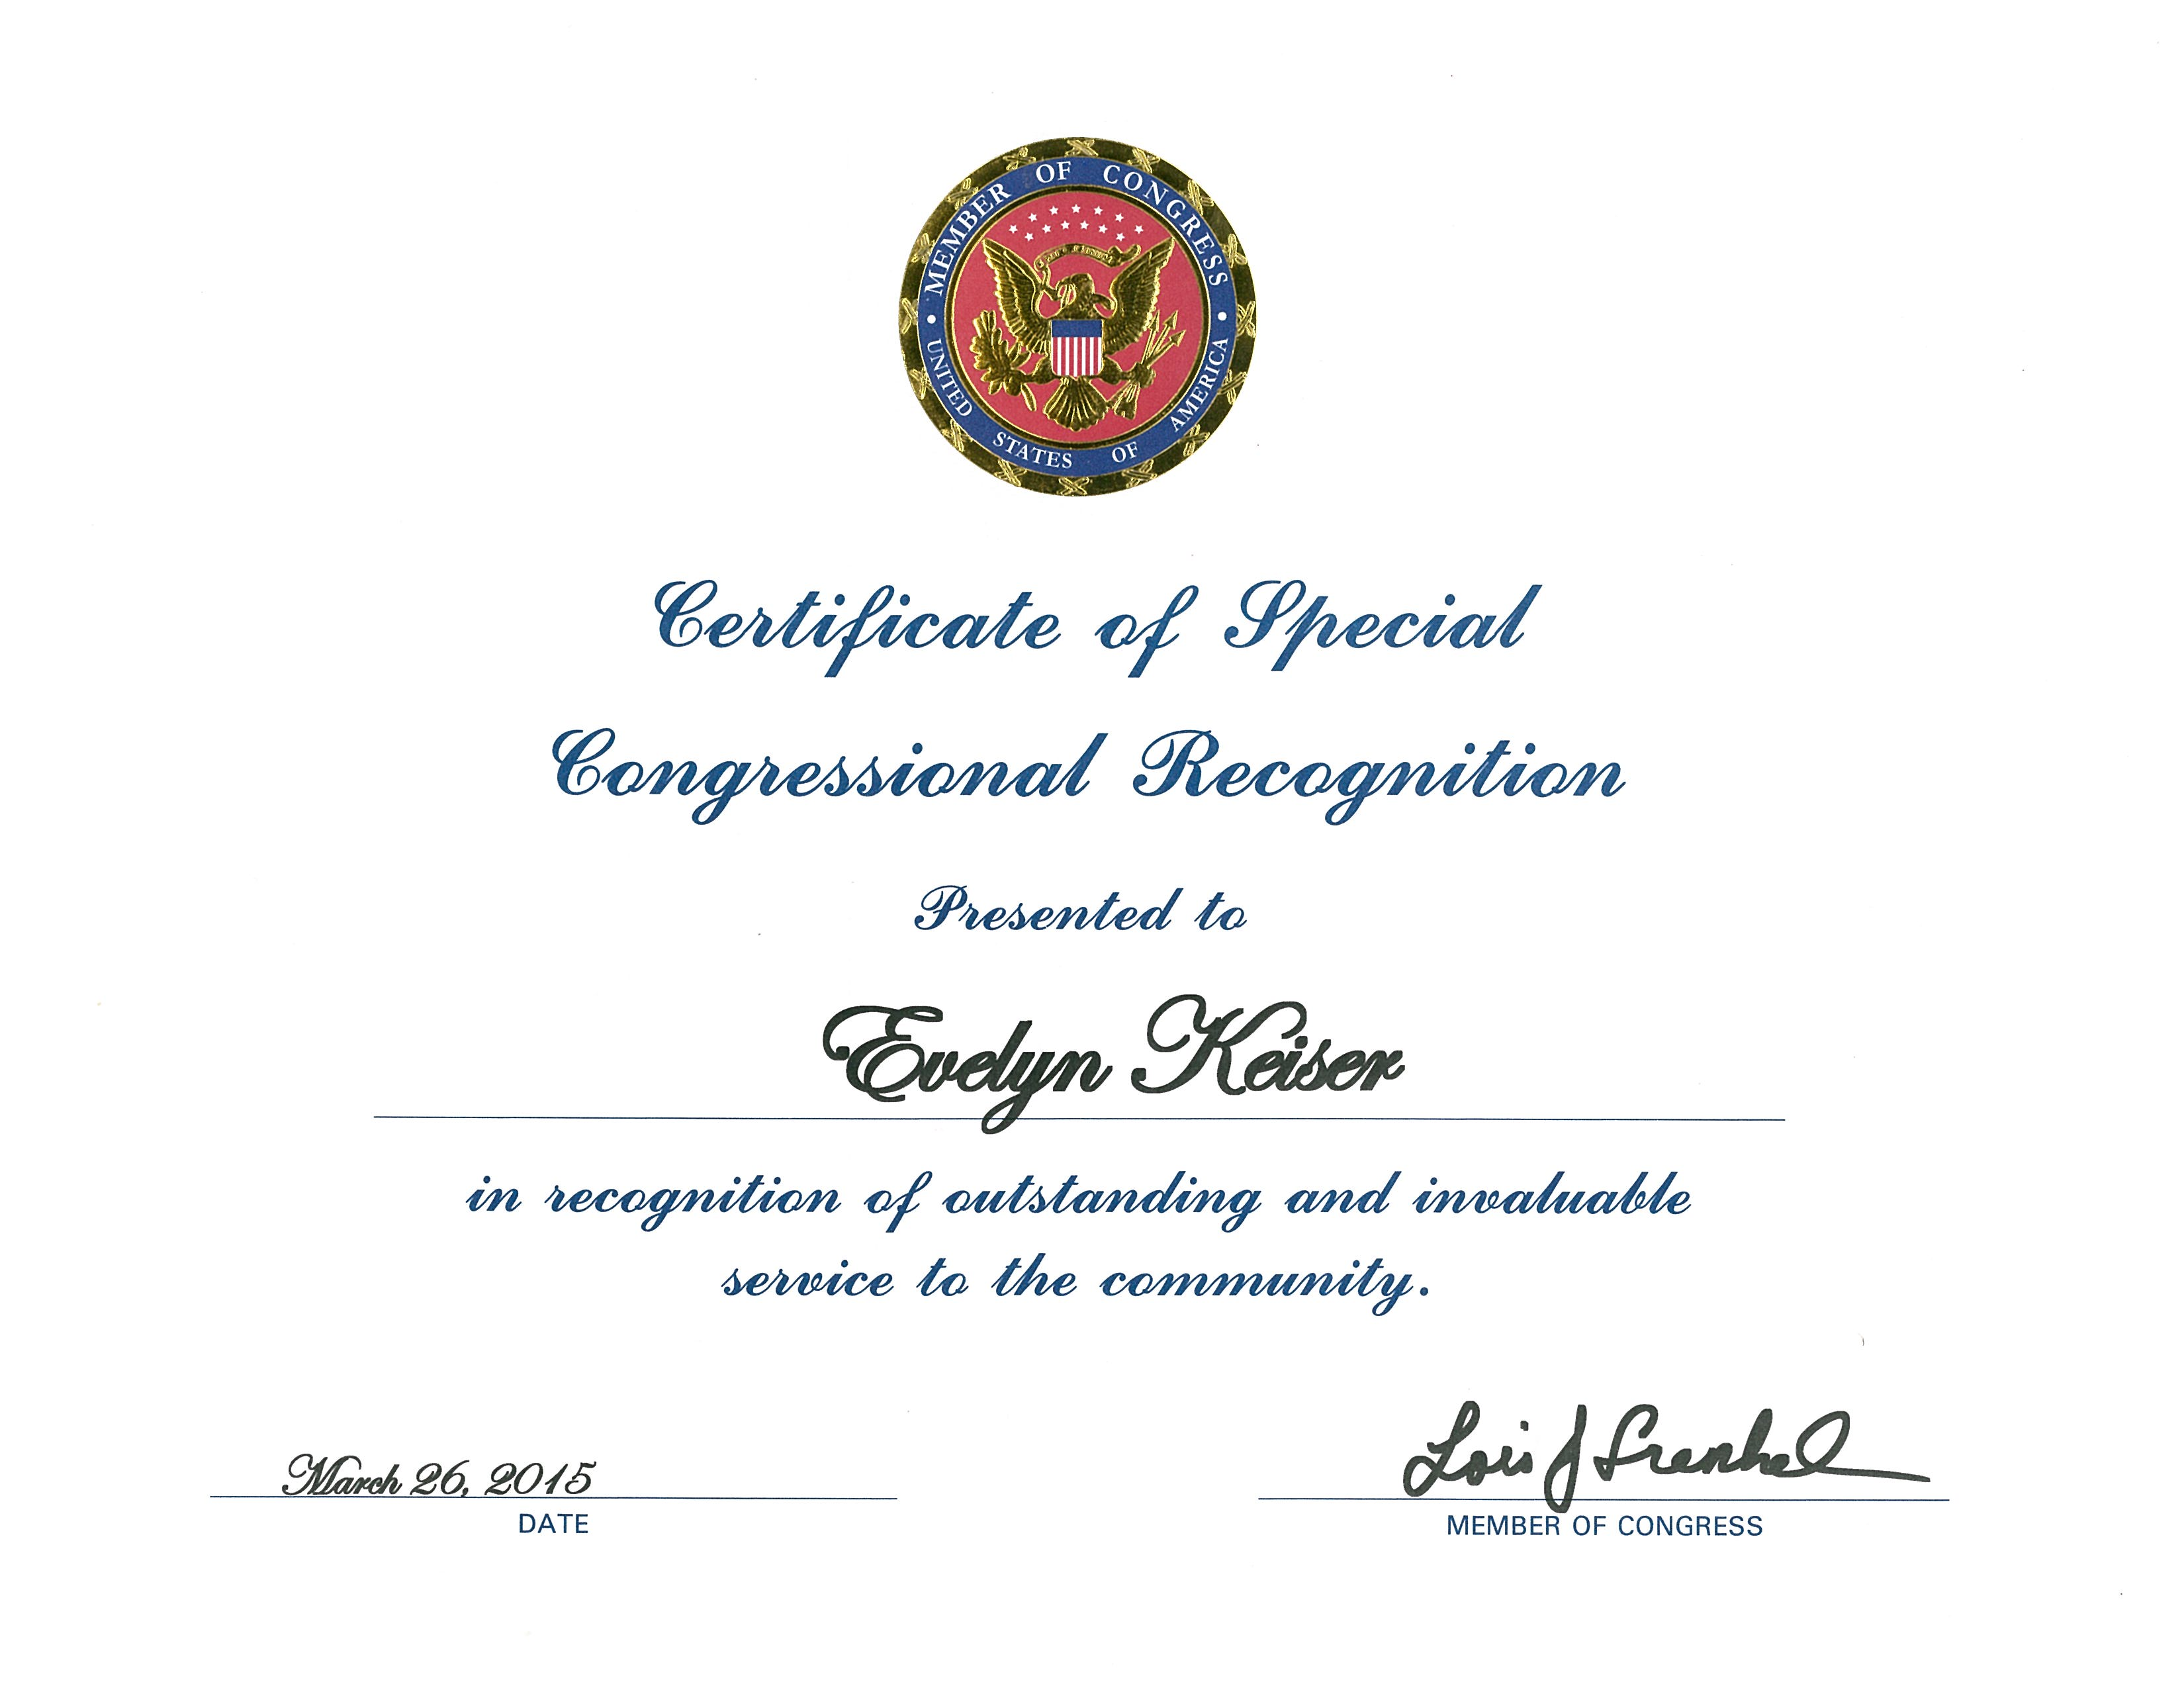 Evelyn Keiser, Co-Founder of Keiser University, Recognized in the Congressional Record for Induction into the Florida Women's Hall of Fame